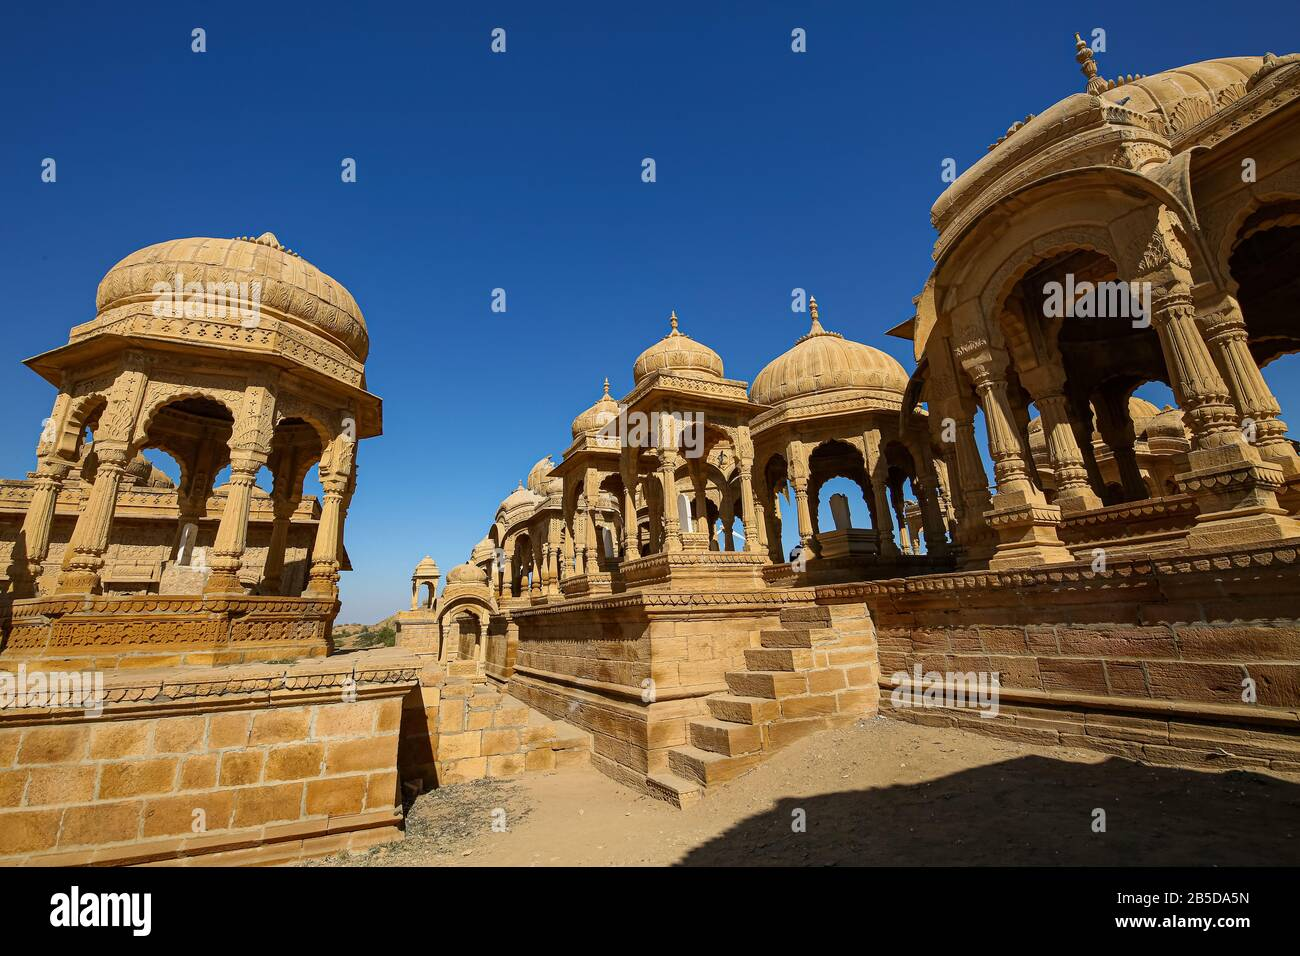 Historic ruins of royal cenotaphs at Bada Bagh Jaisalmer Rajasthan, India Stock Photo